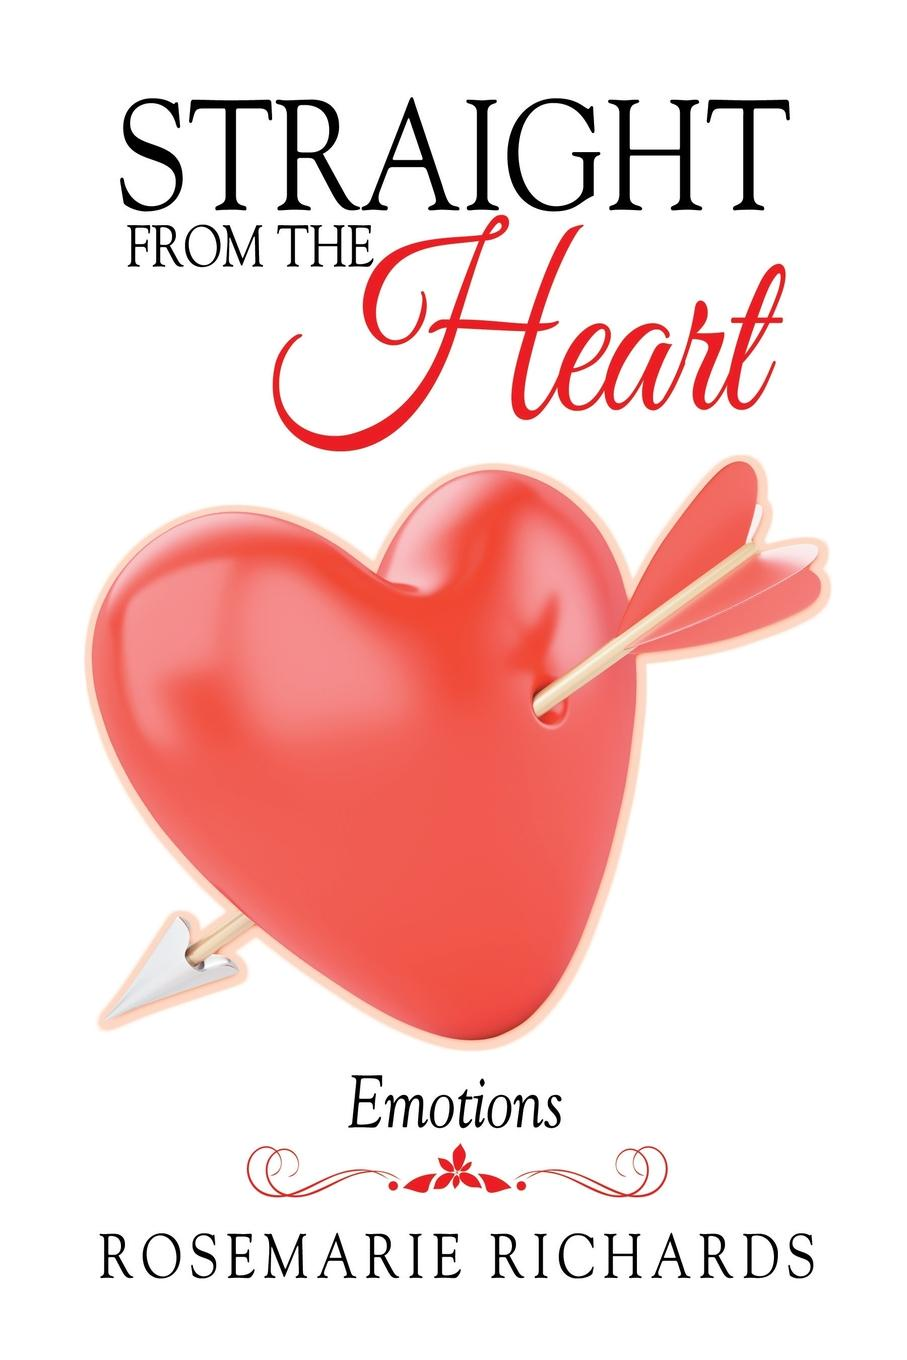 Rosemarie Richards Straight from the Heart. Emotions